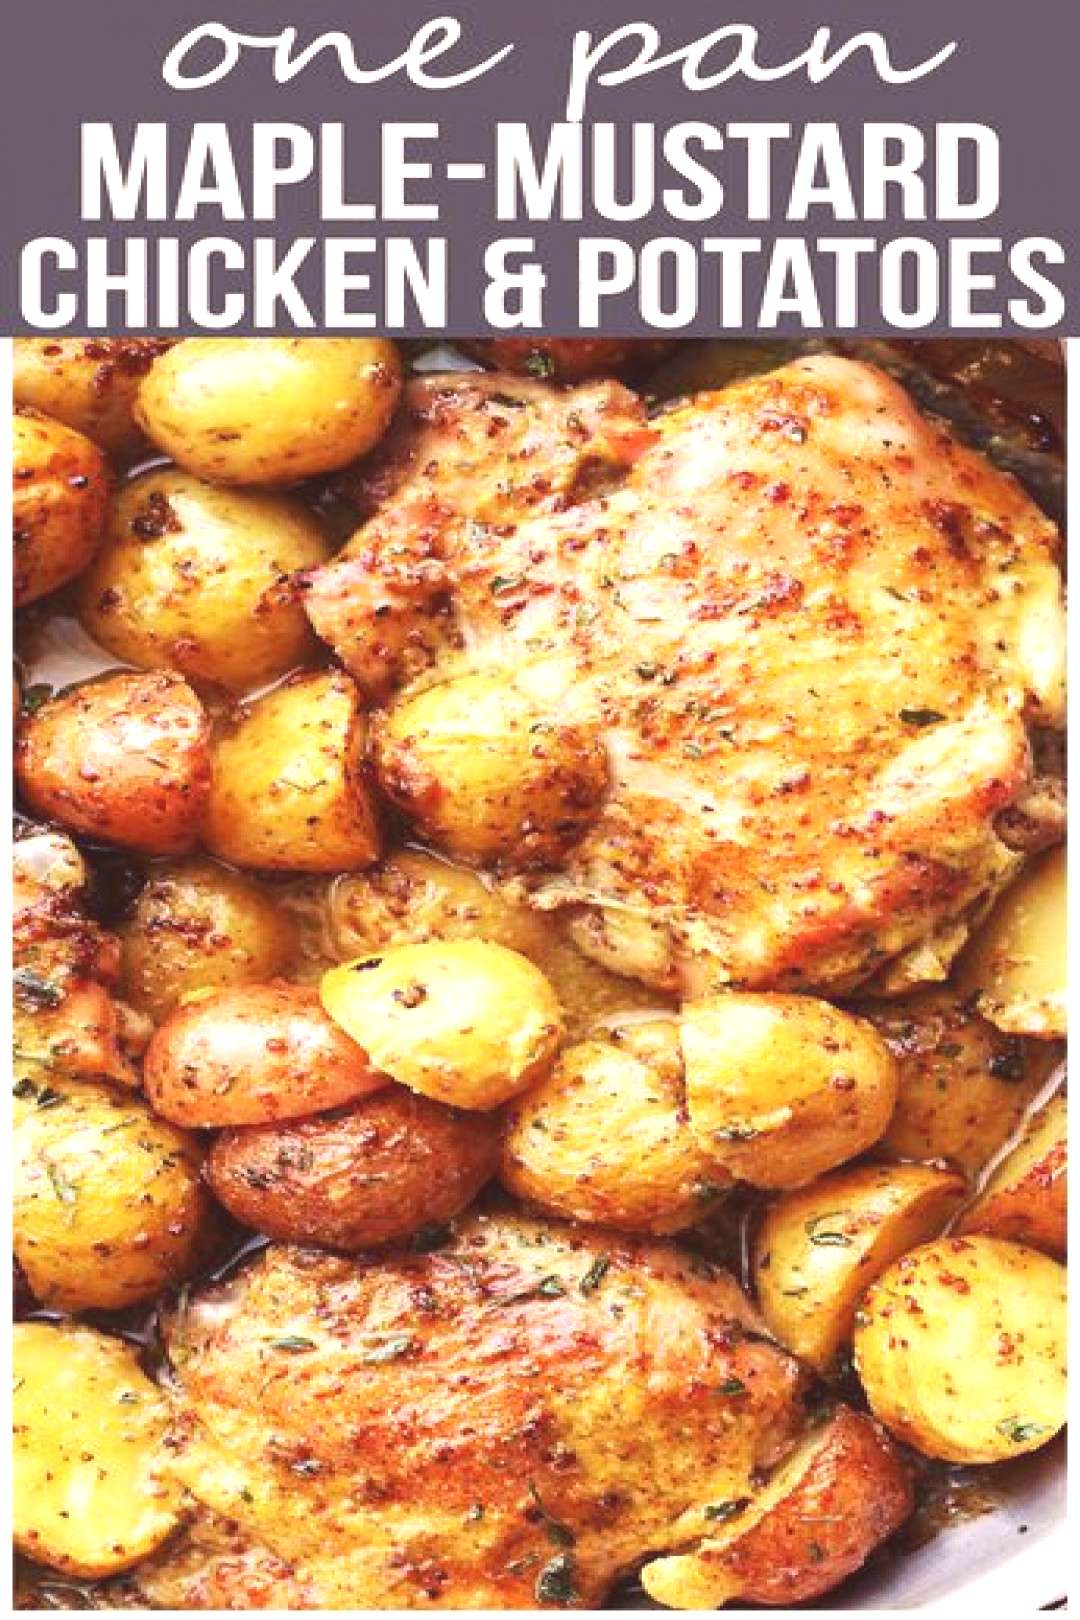 One Pan Maple Mustard Chicken and Potatoes – Easy and absolutely amazing one pan dinner with chic